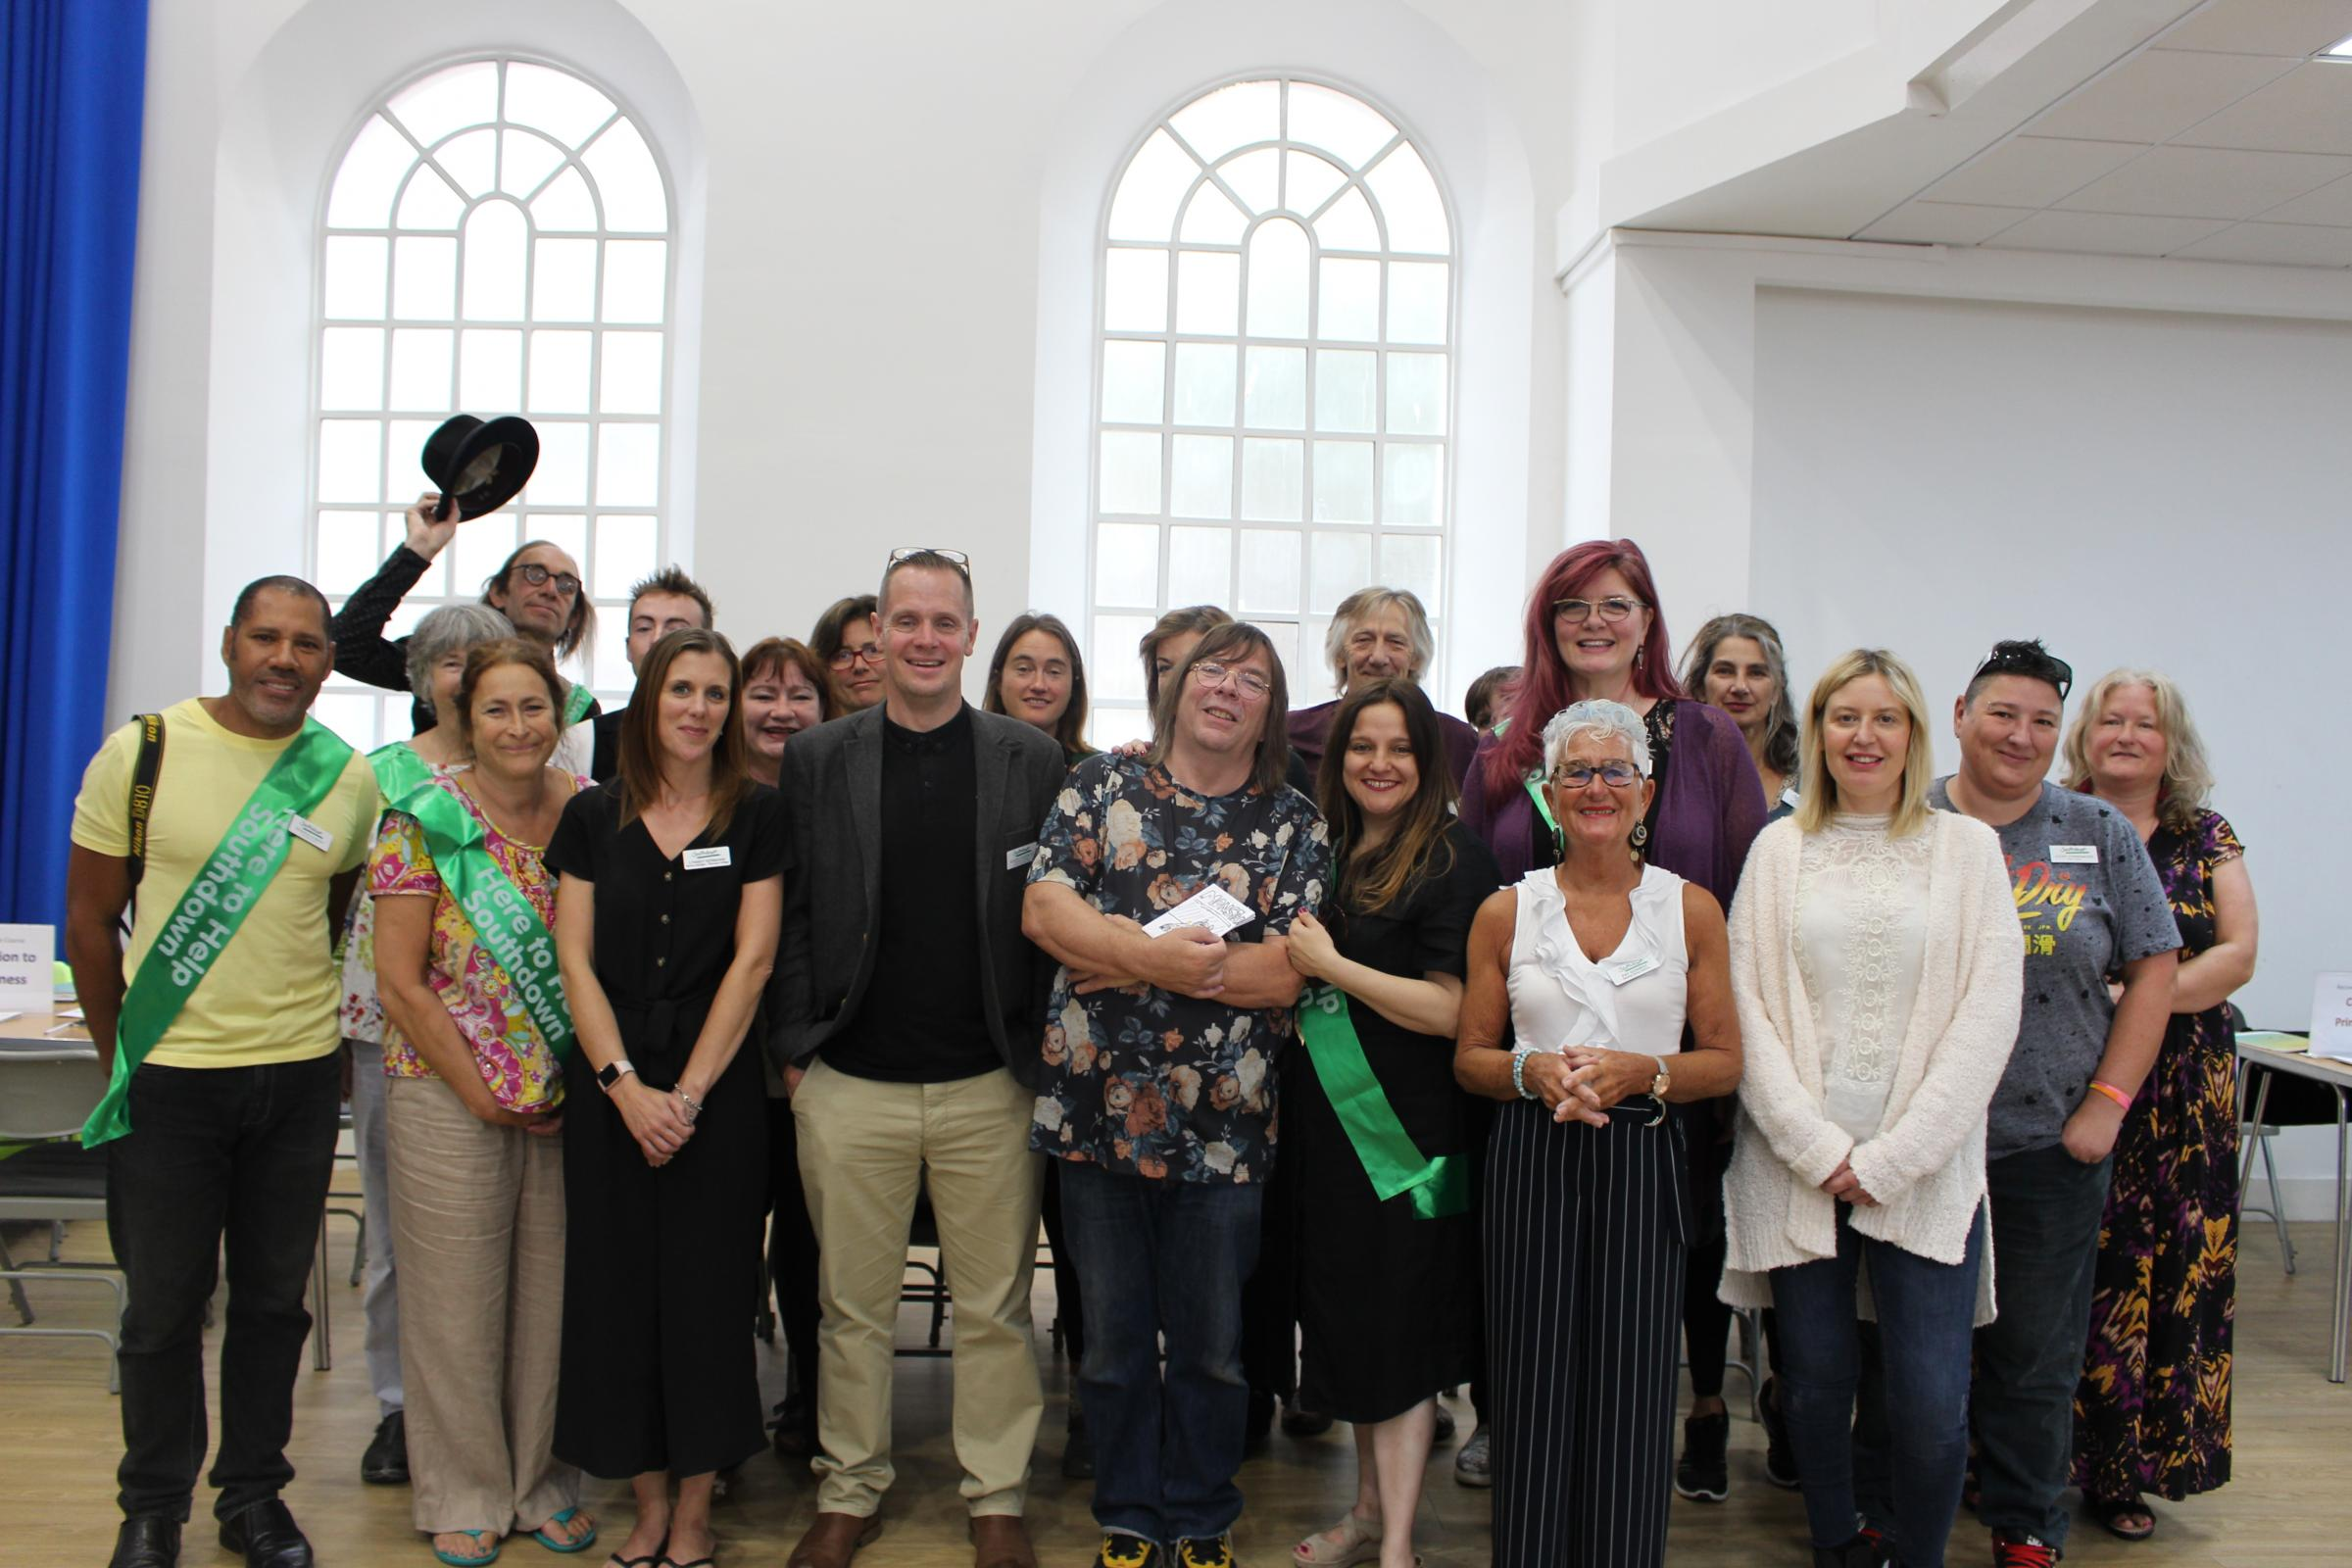 Brighton mental health recovery college host Open Day event to launch new courses and workshops